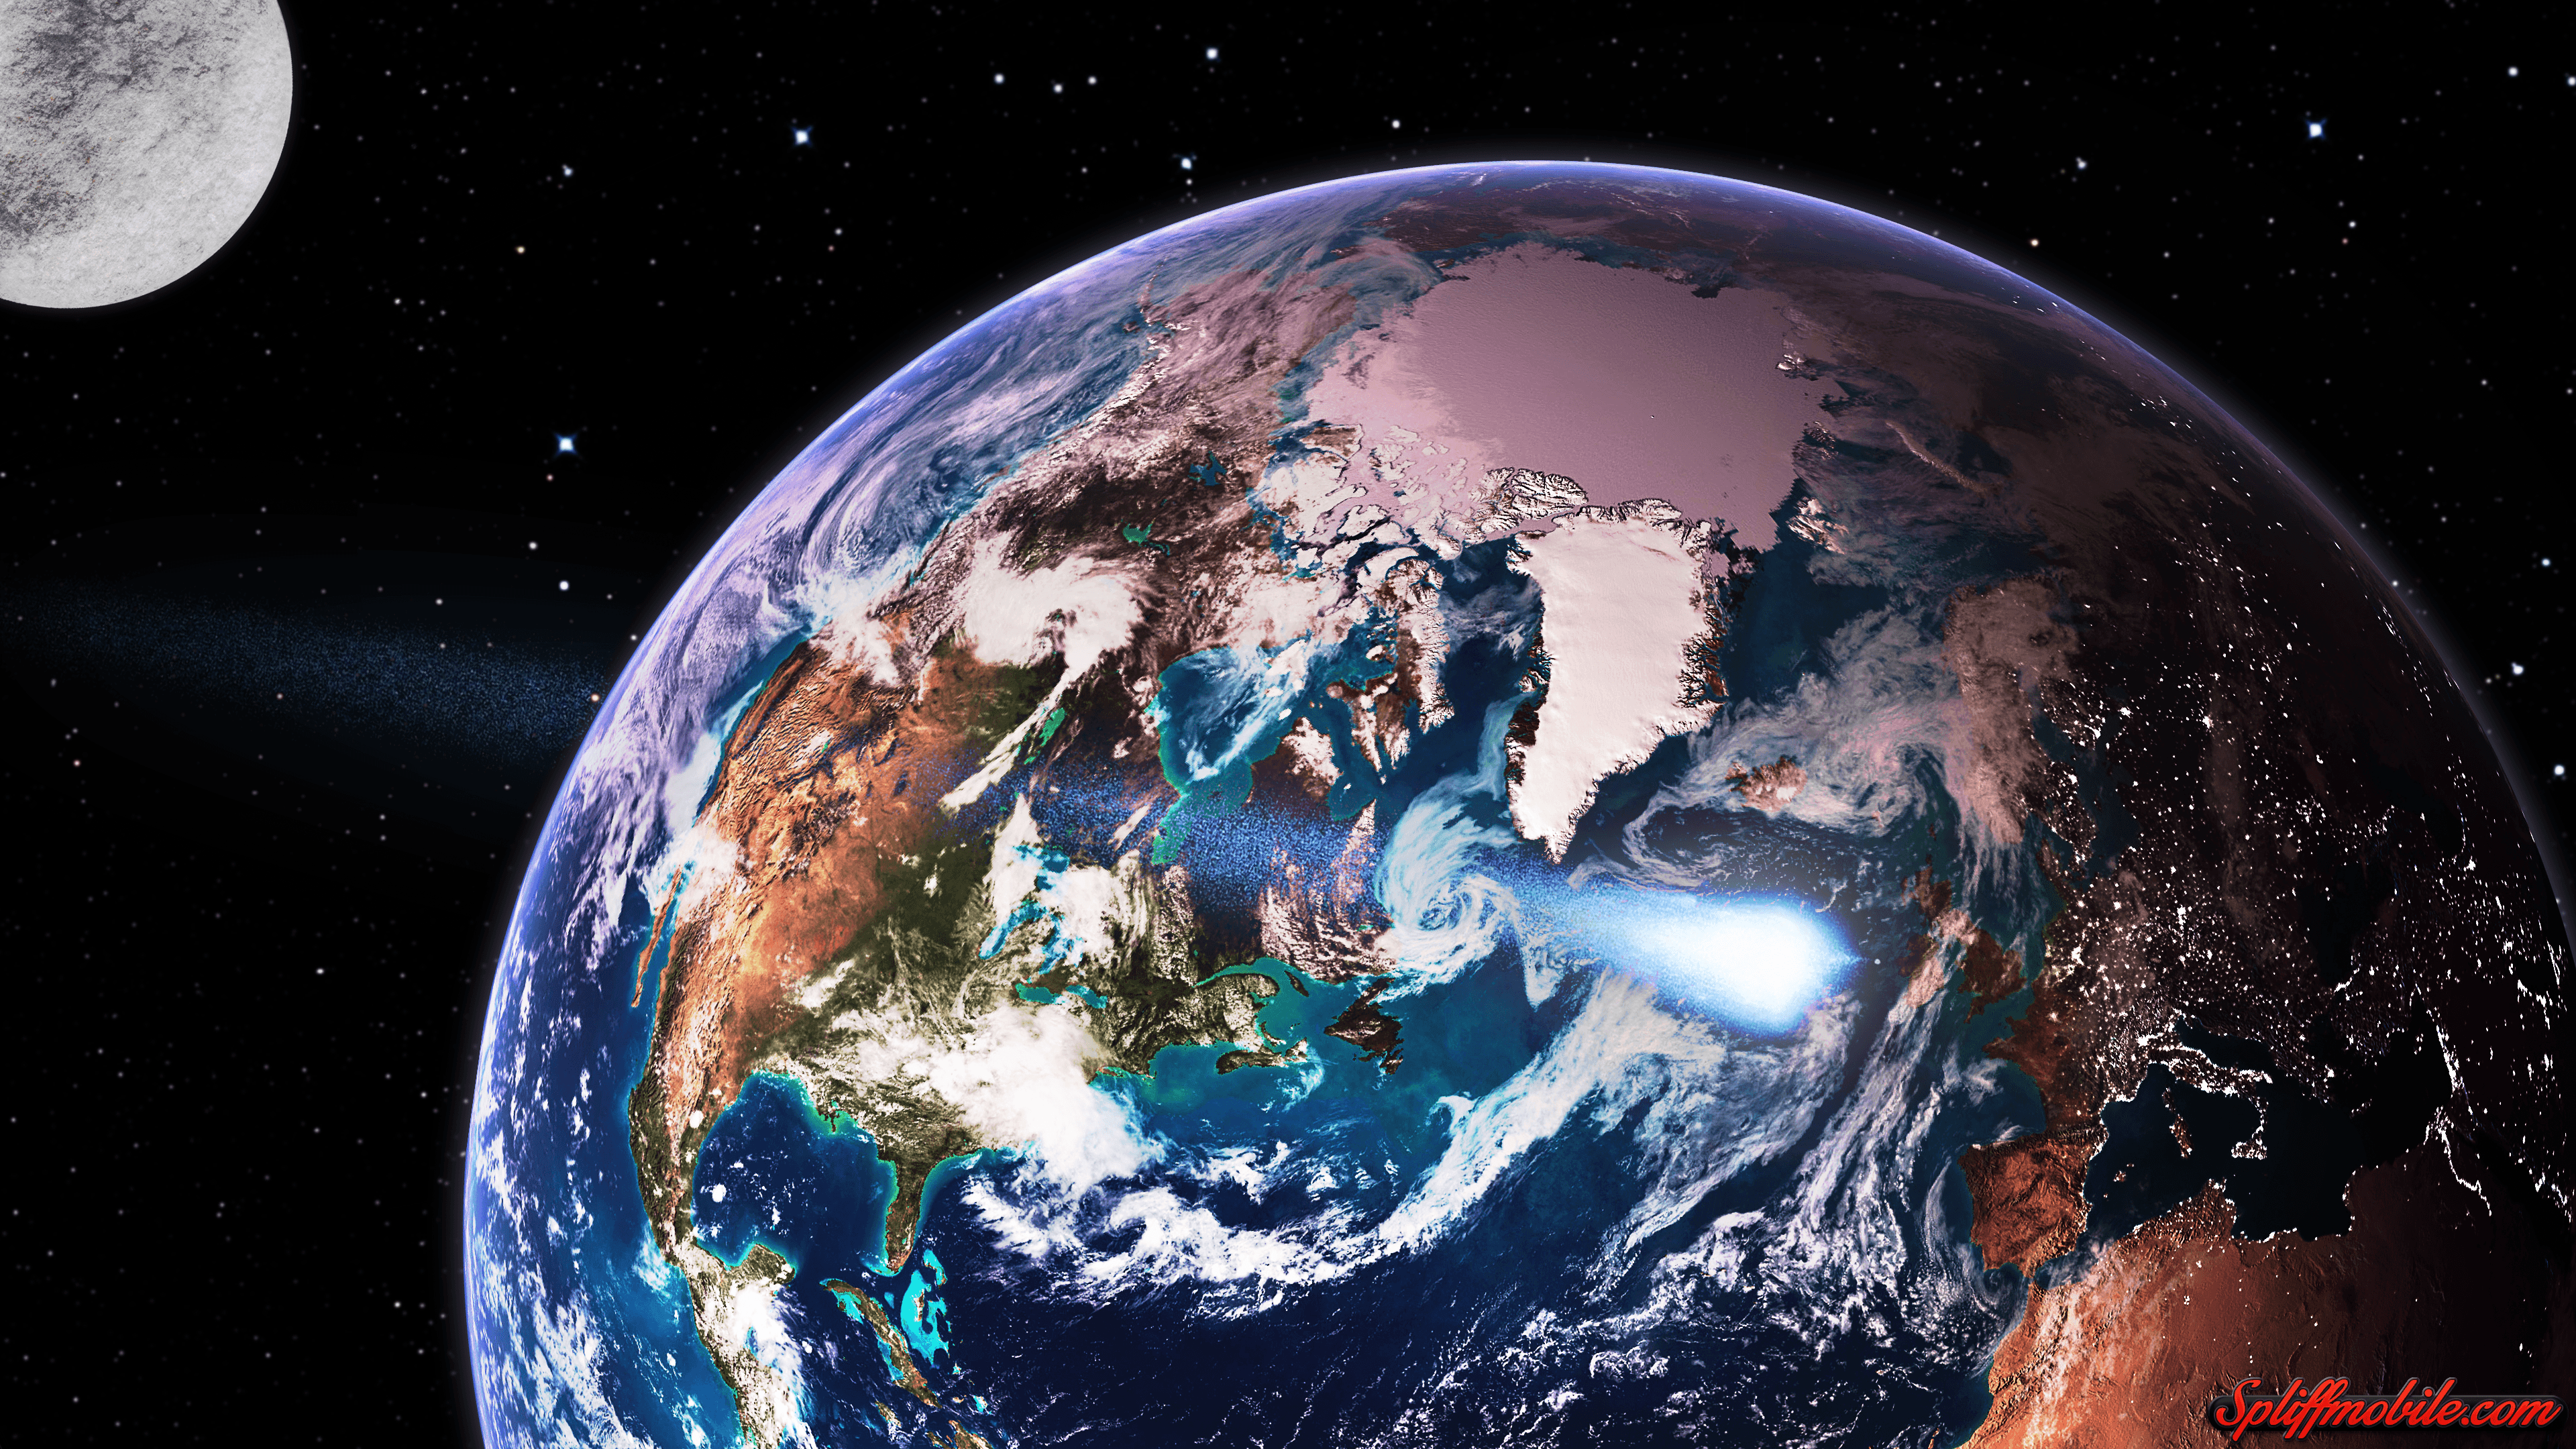 HD Earth From Space Wallpaper